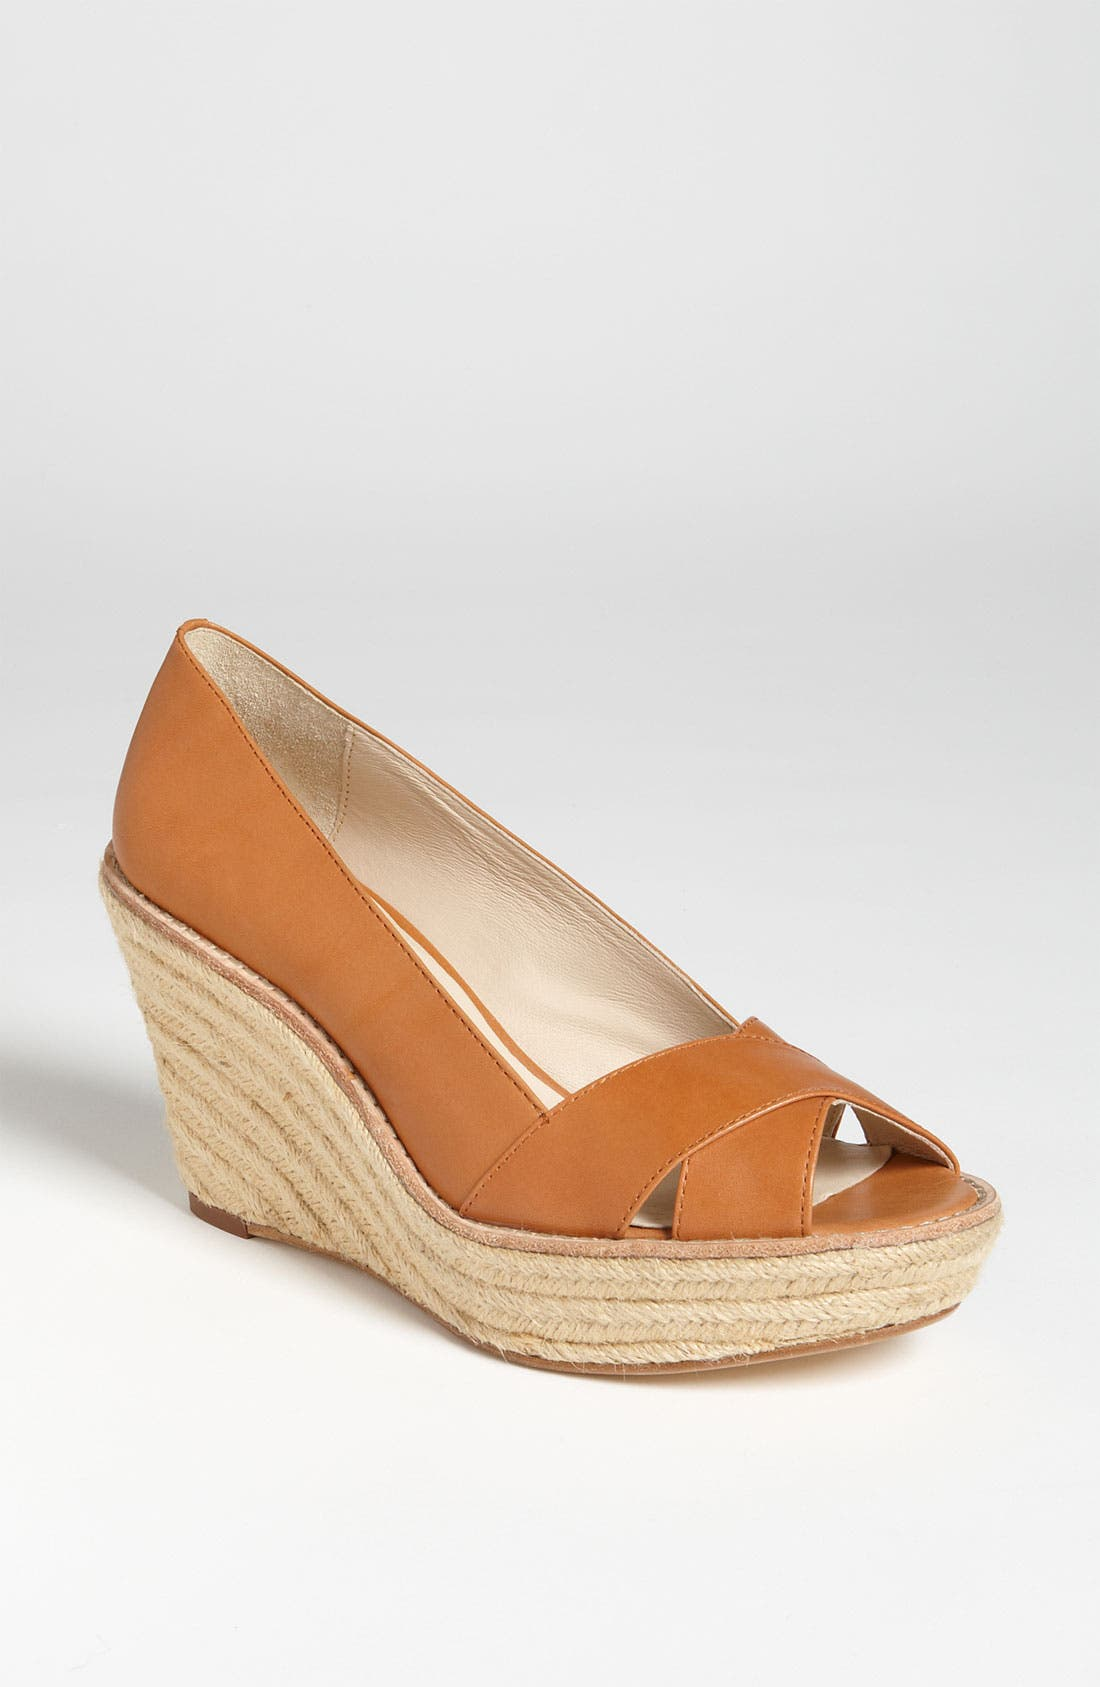 Alternate Image 1 Selected - KORS Michael Kors 'Upland' Wedge